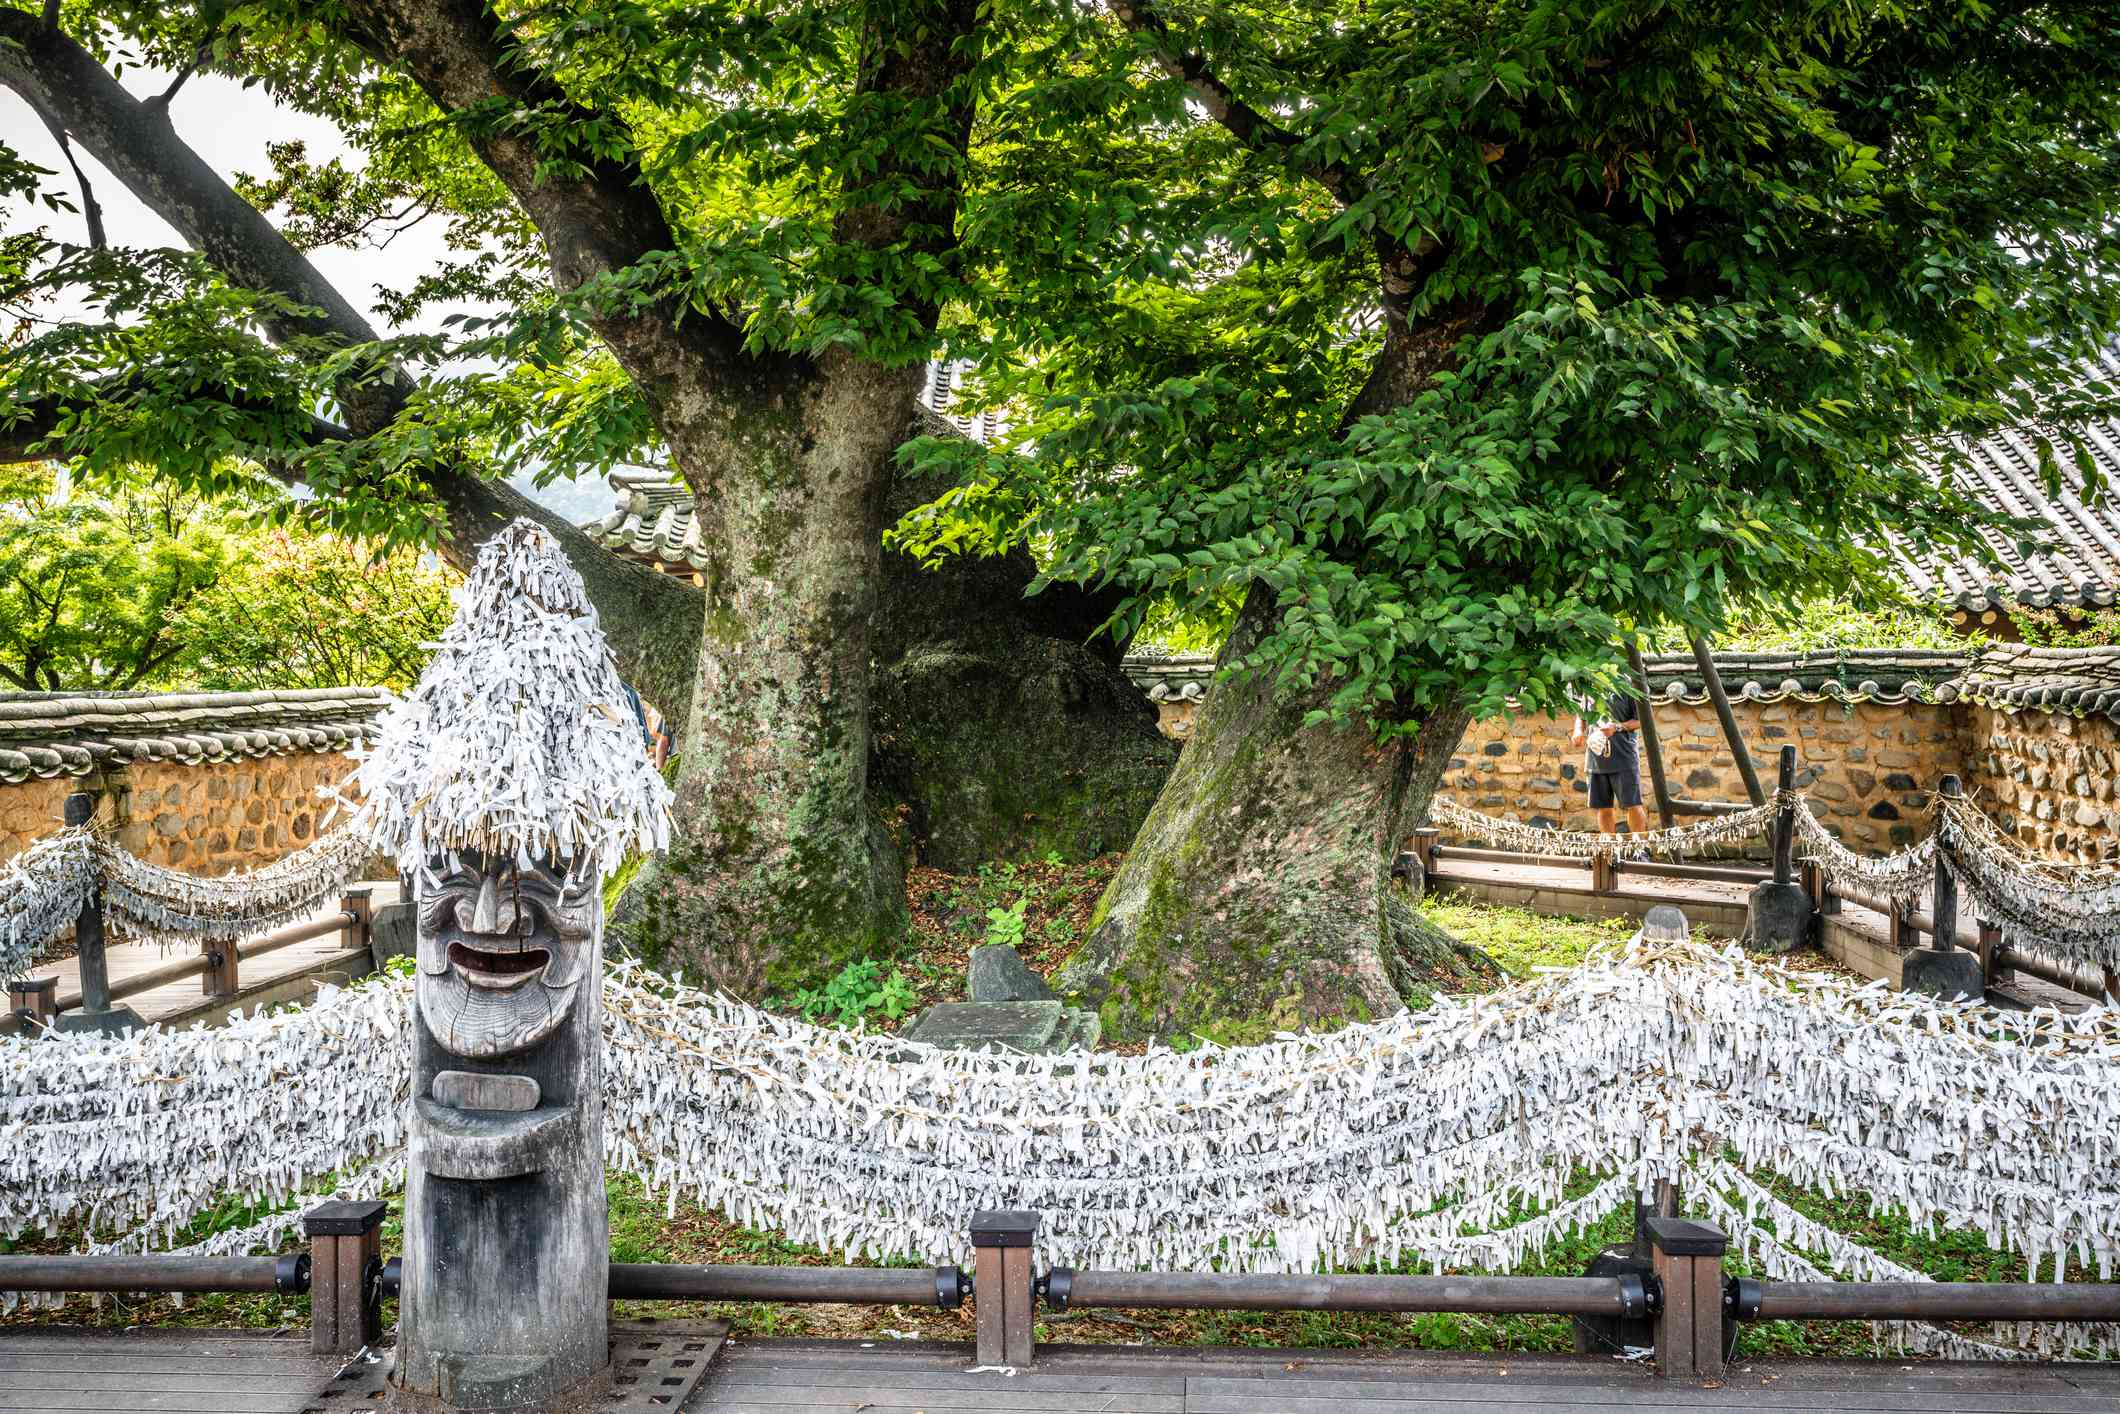 Traditional statue in Hahoe Folk Village, in Andong, South Korea